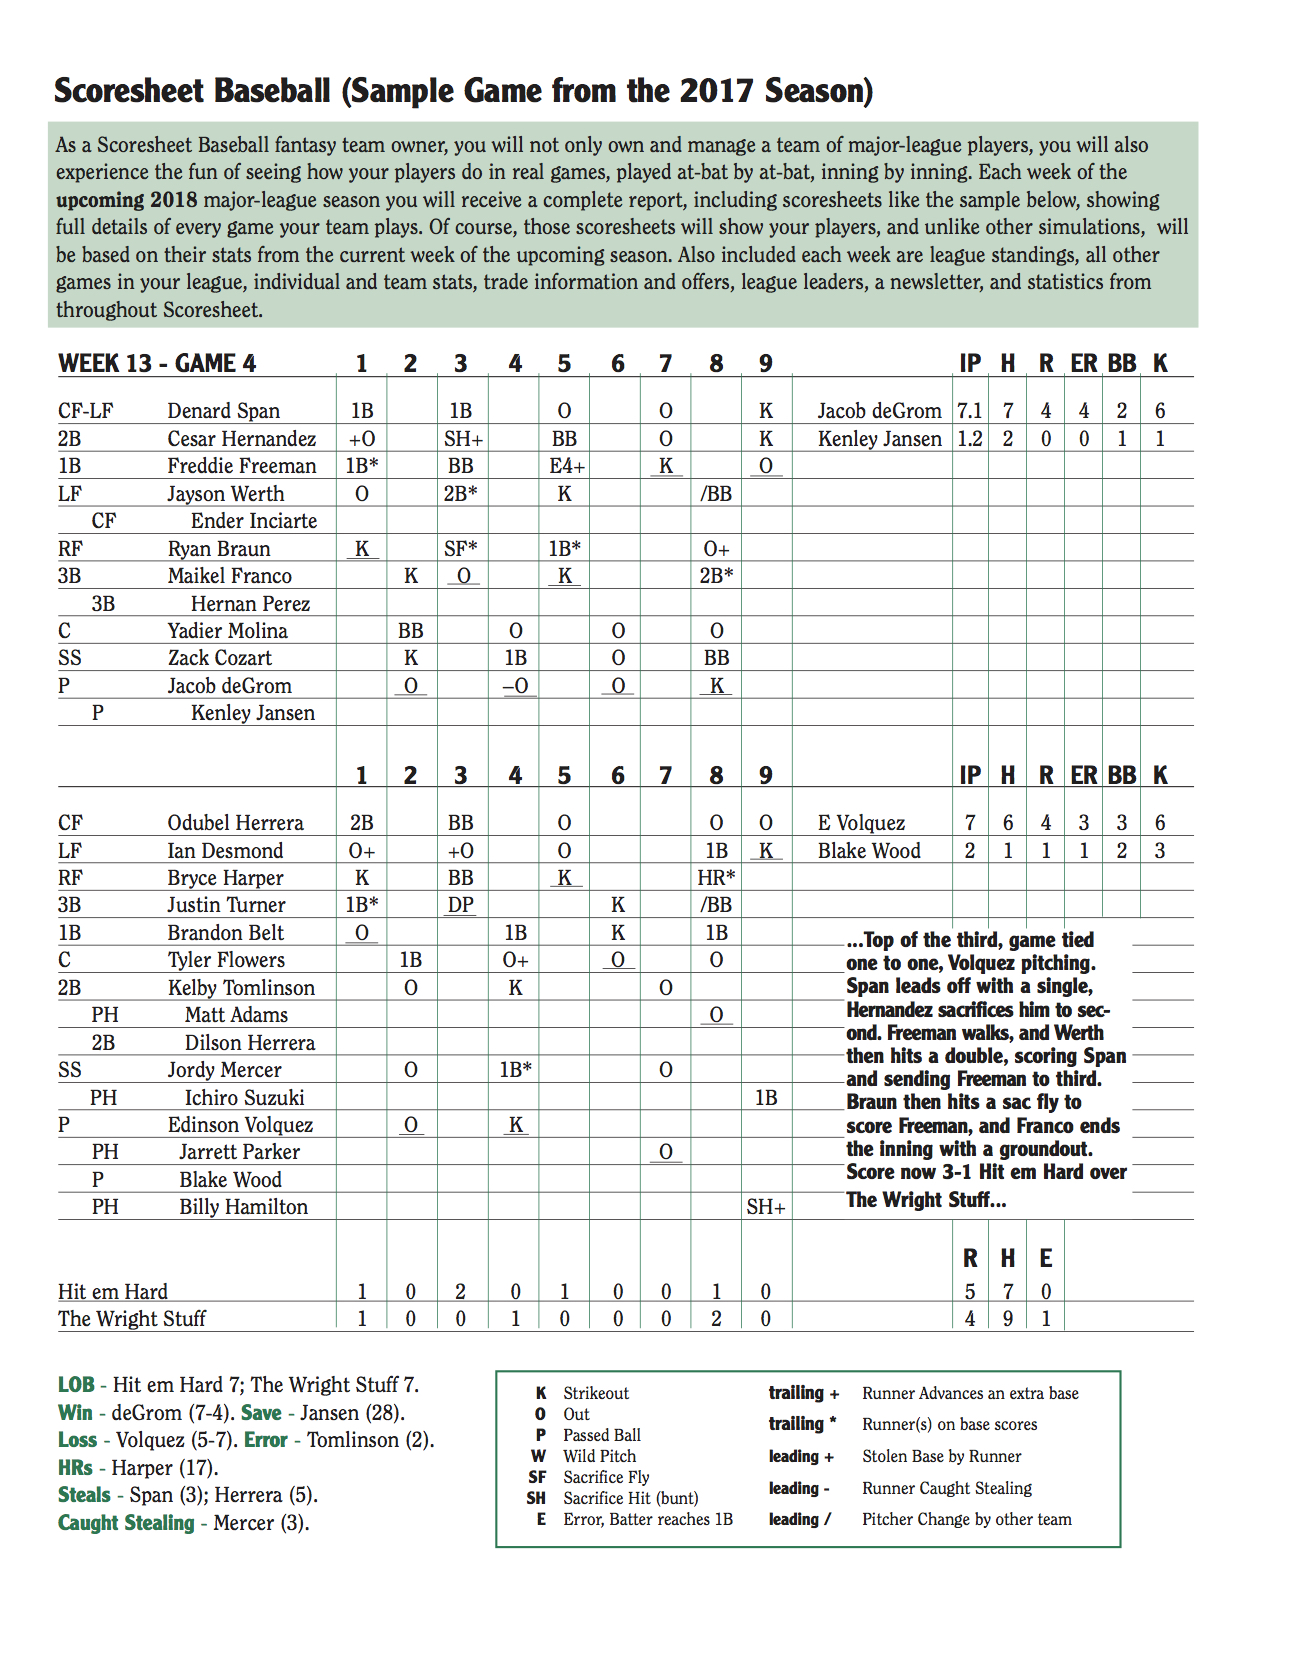 Scoresheet Fantasy Baseball  Sample Scoresheet Boxscore